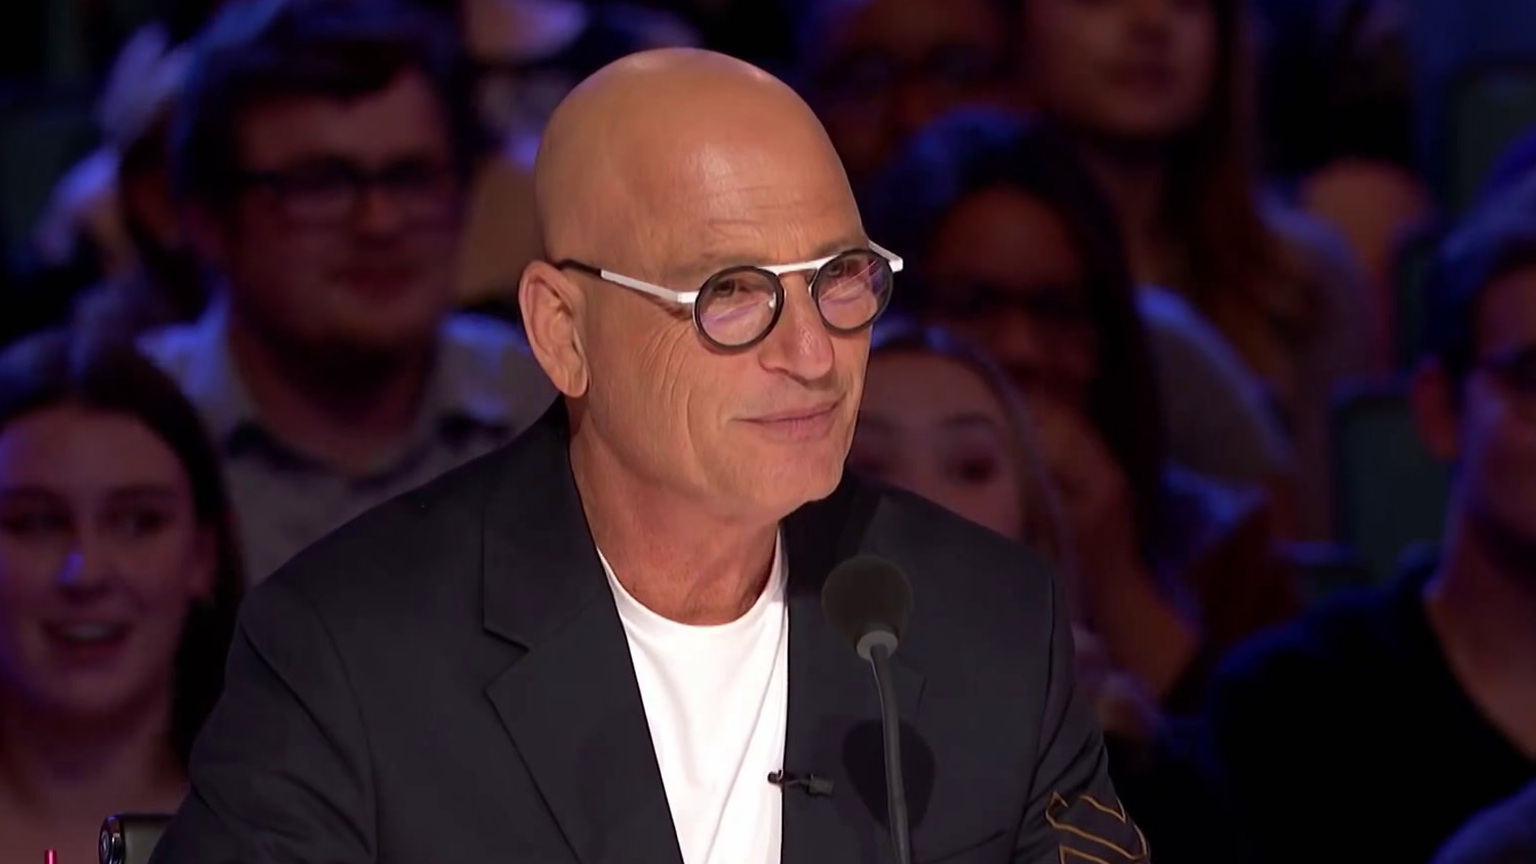 America's Got Talent: Eighty-Year-Old Comedian Marty Ross Tells Funny Stories About His Age